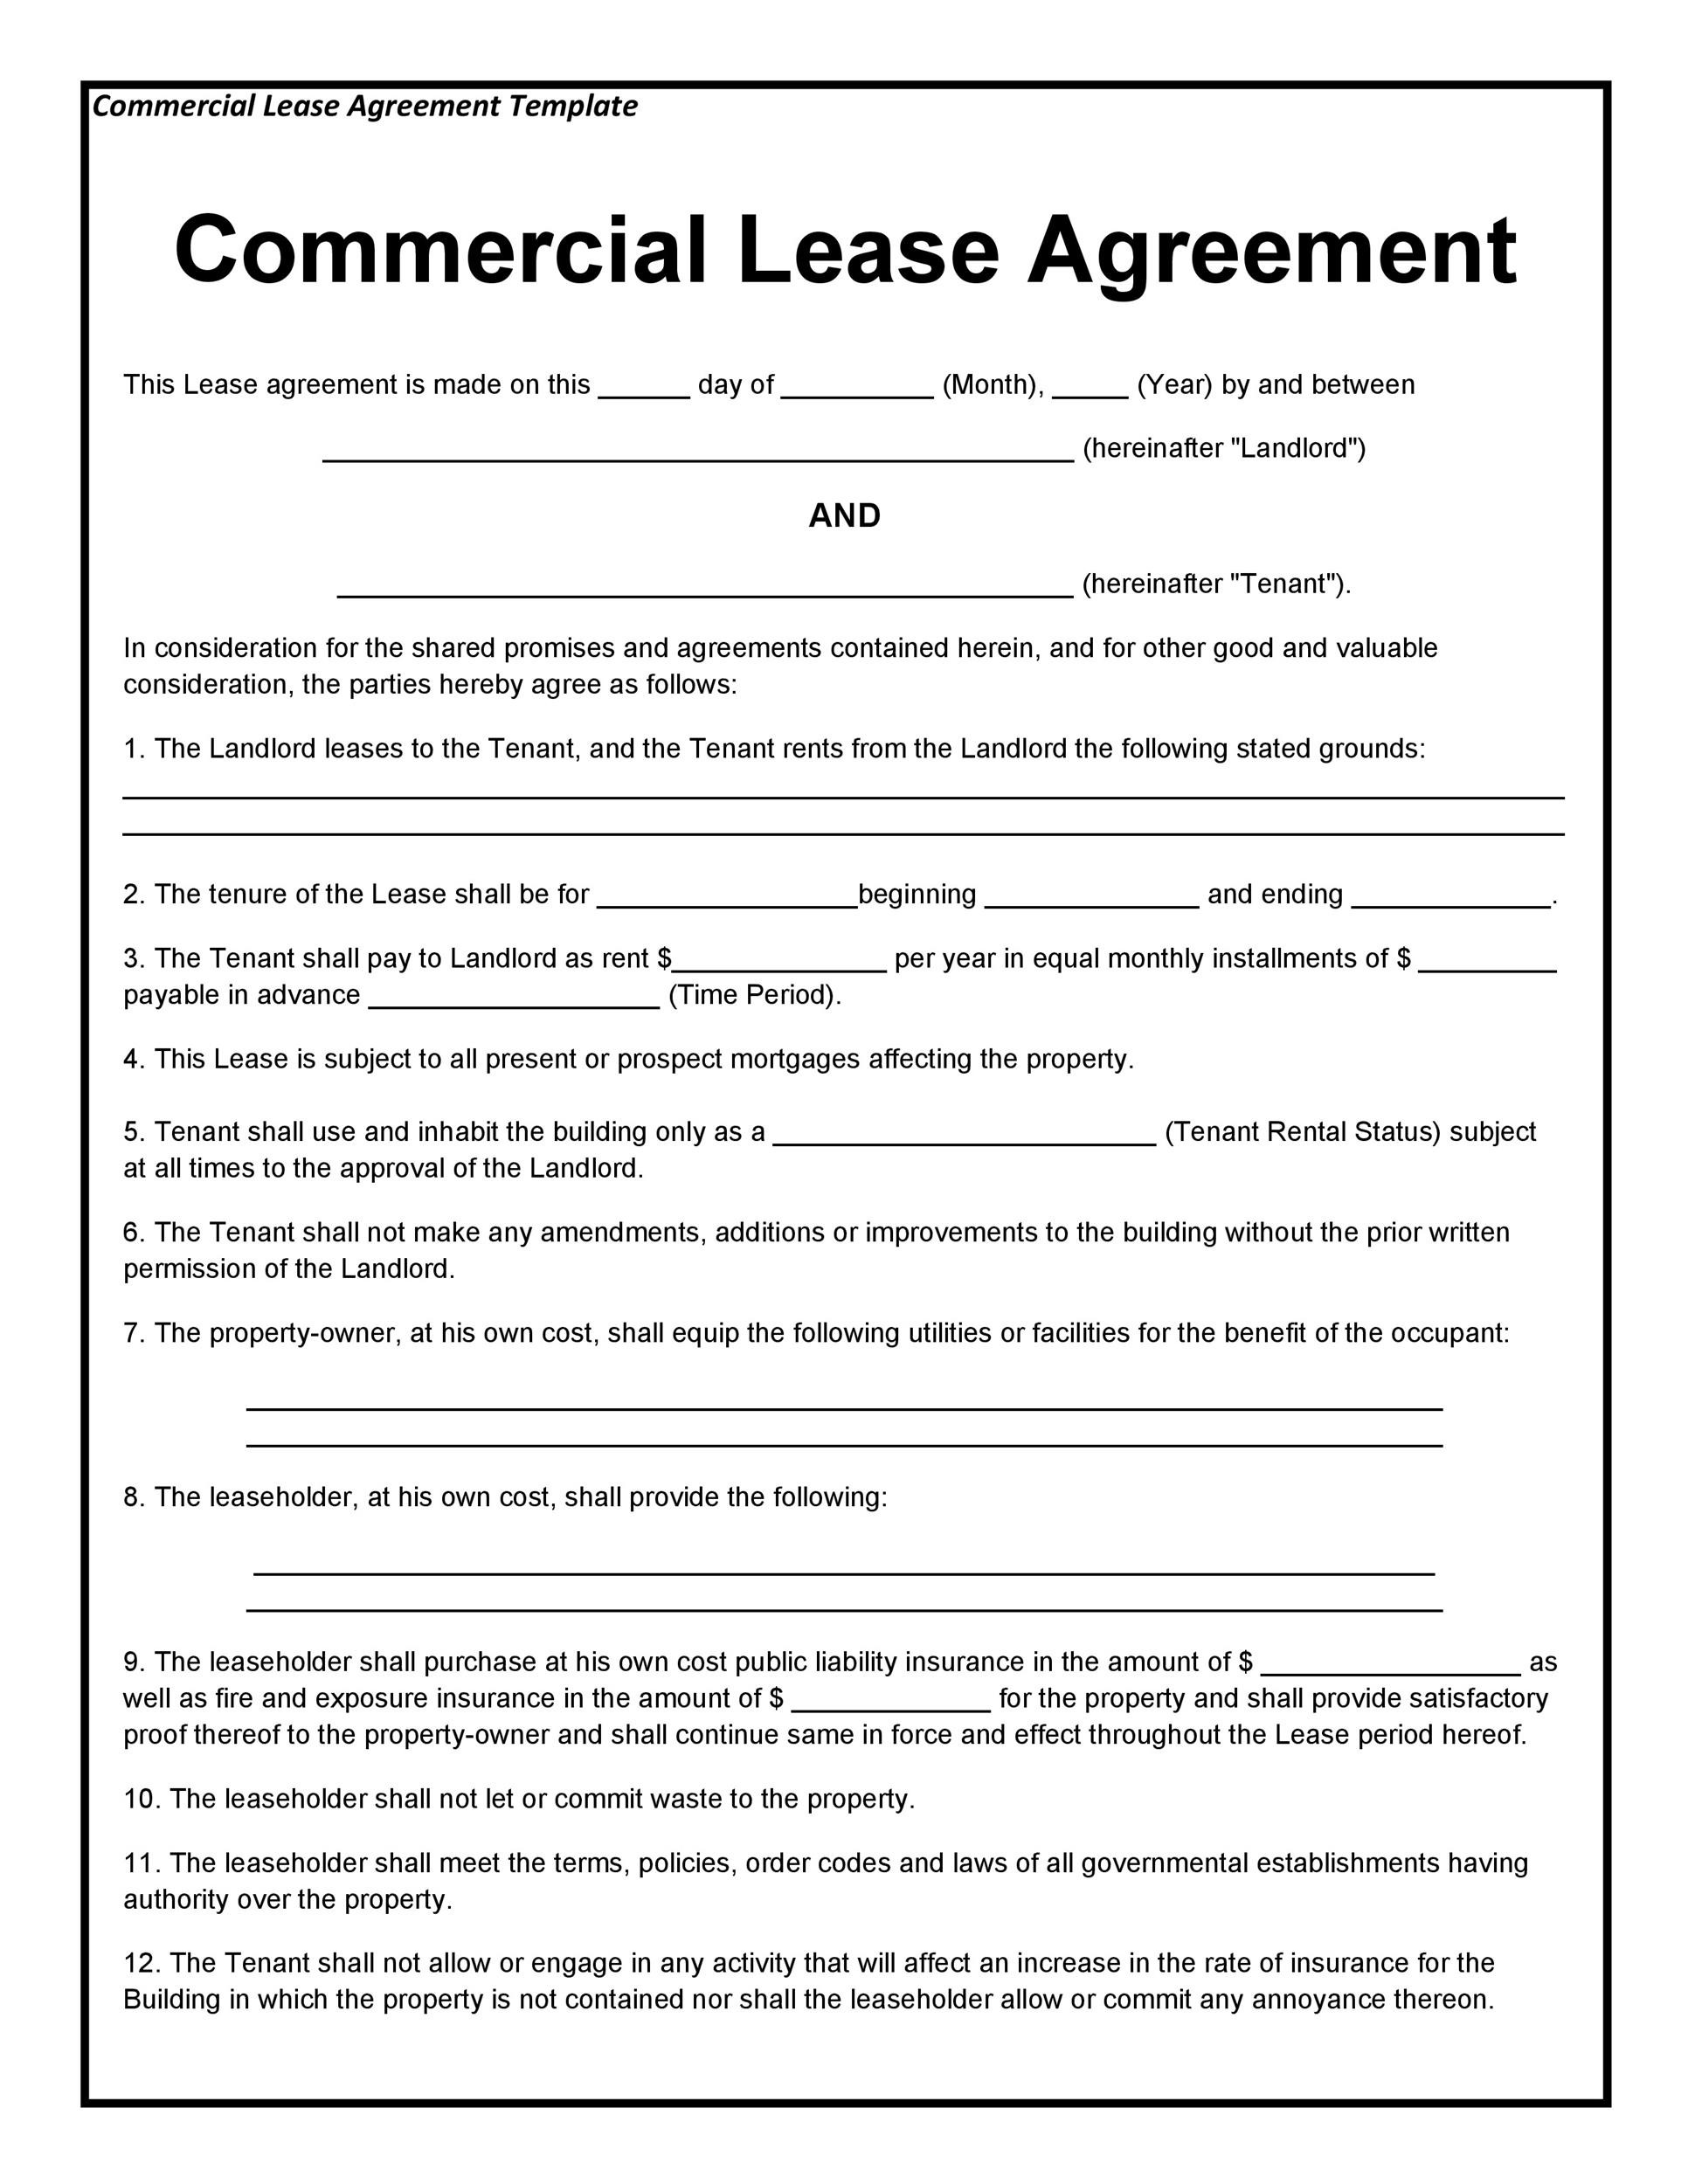 26 Free Commercial Lease Agreement Templates - Template Lab - Free Lease Agreement Template